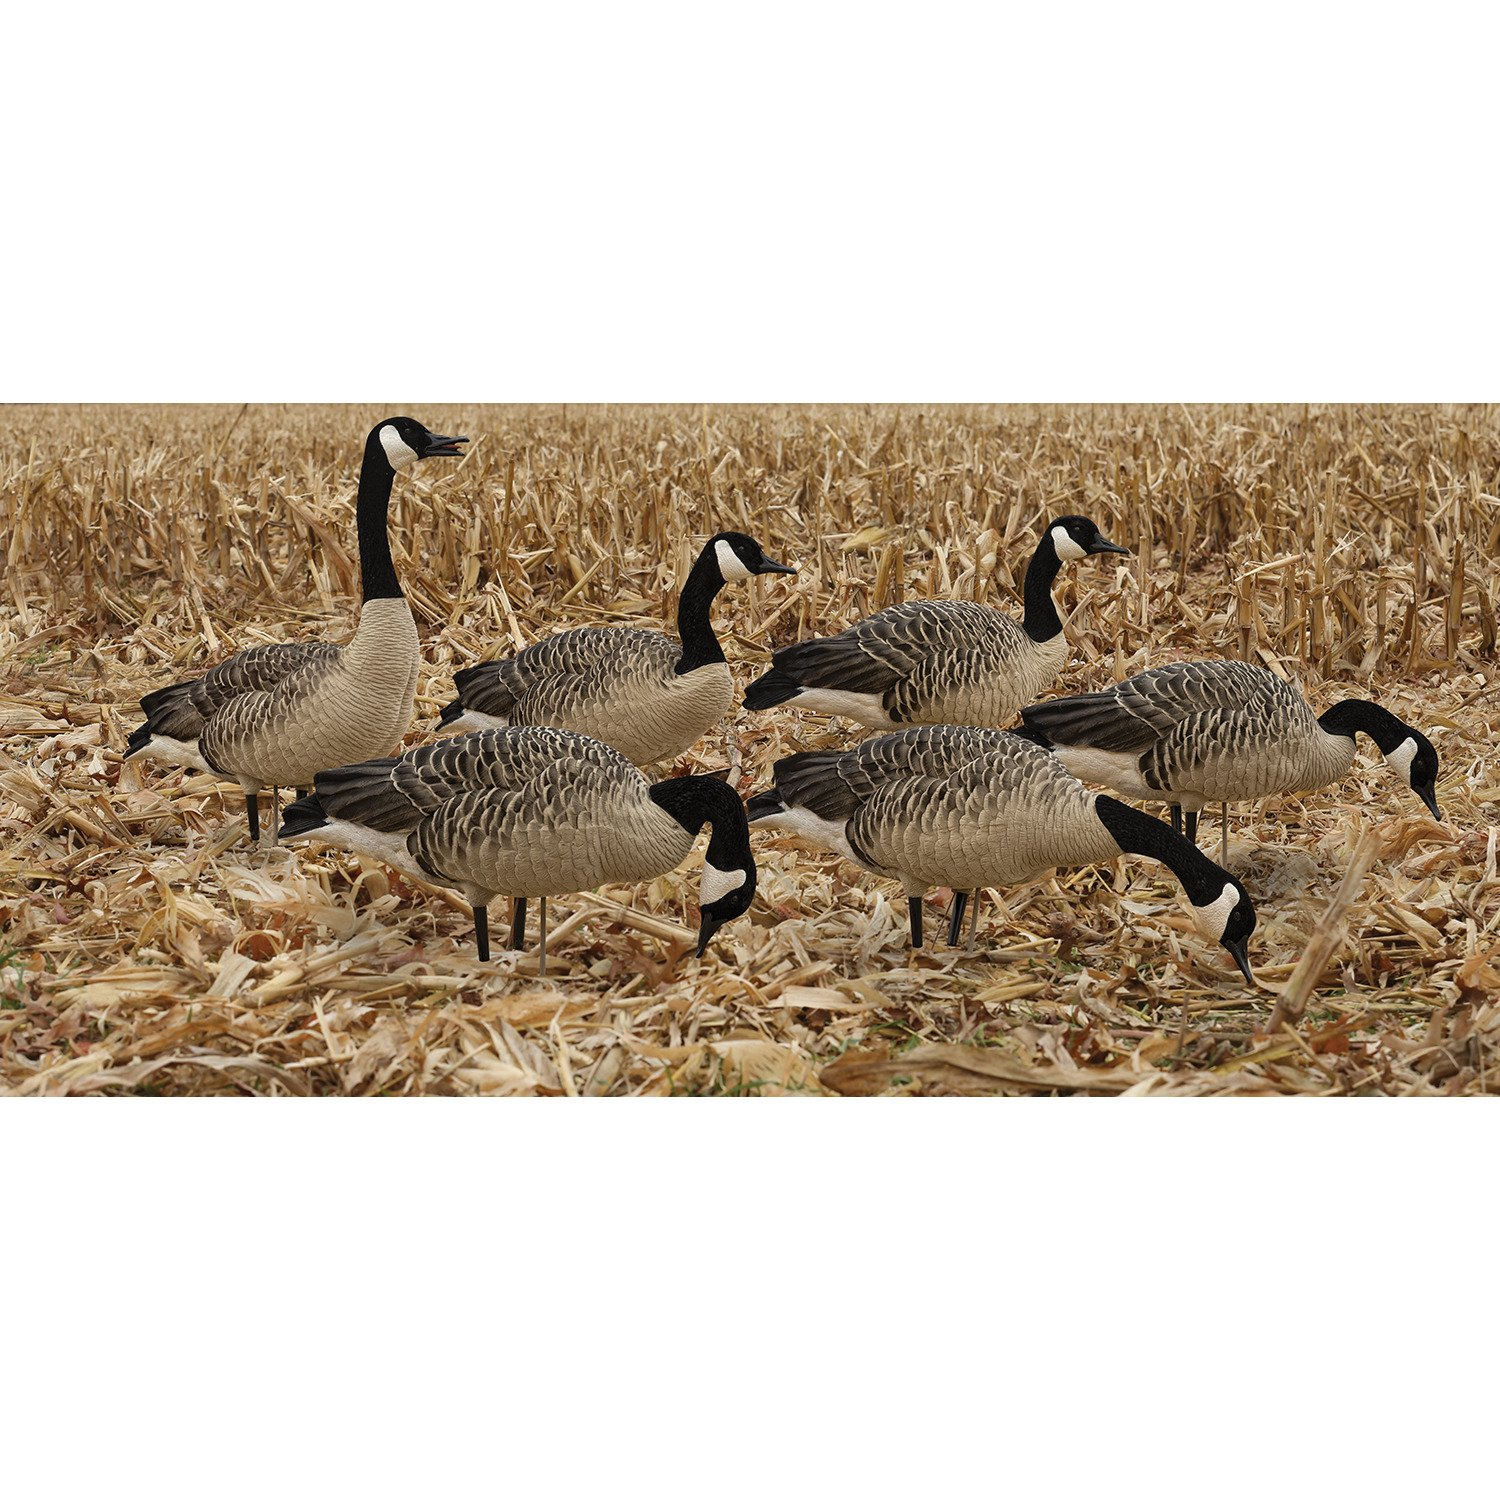 Avian-X AXP Painted Honkers Fusion Goose Decoys 6-Pack - view number 3